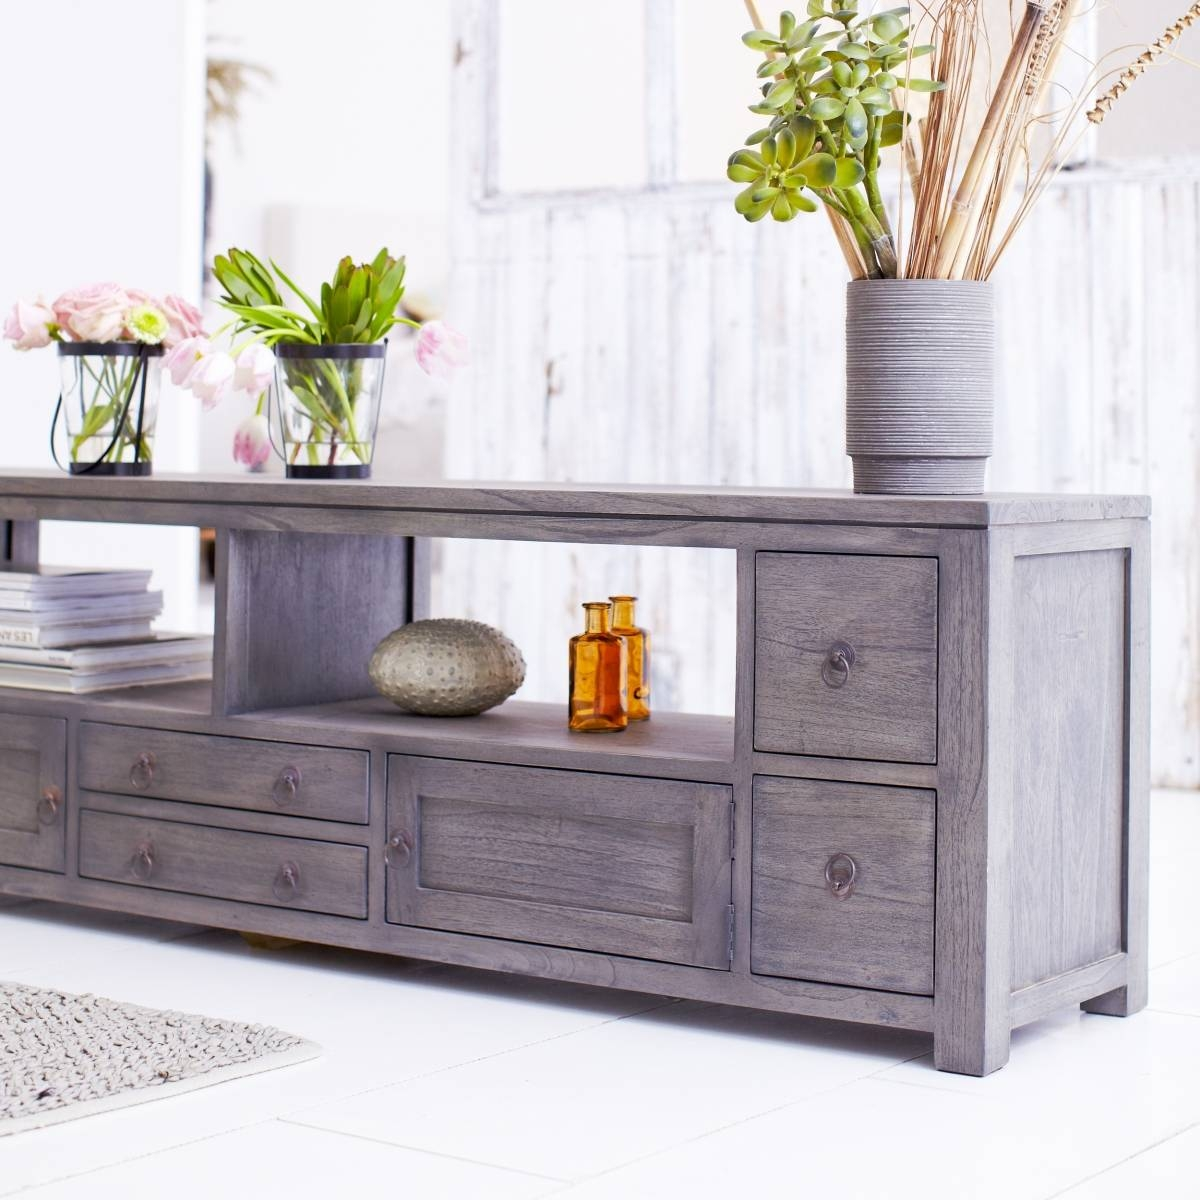 Solid Grey Tv Stand : How To Make Grey Tv Stand – Indoor & Outdoor in Grey Wood Tv Stands (Image 6 of 15)